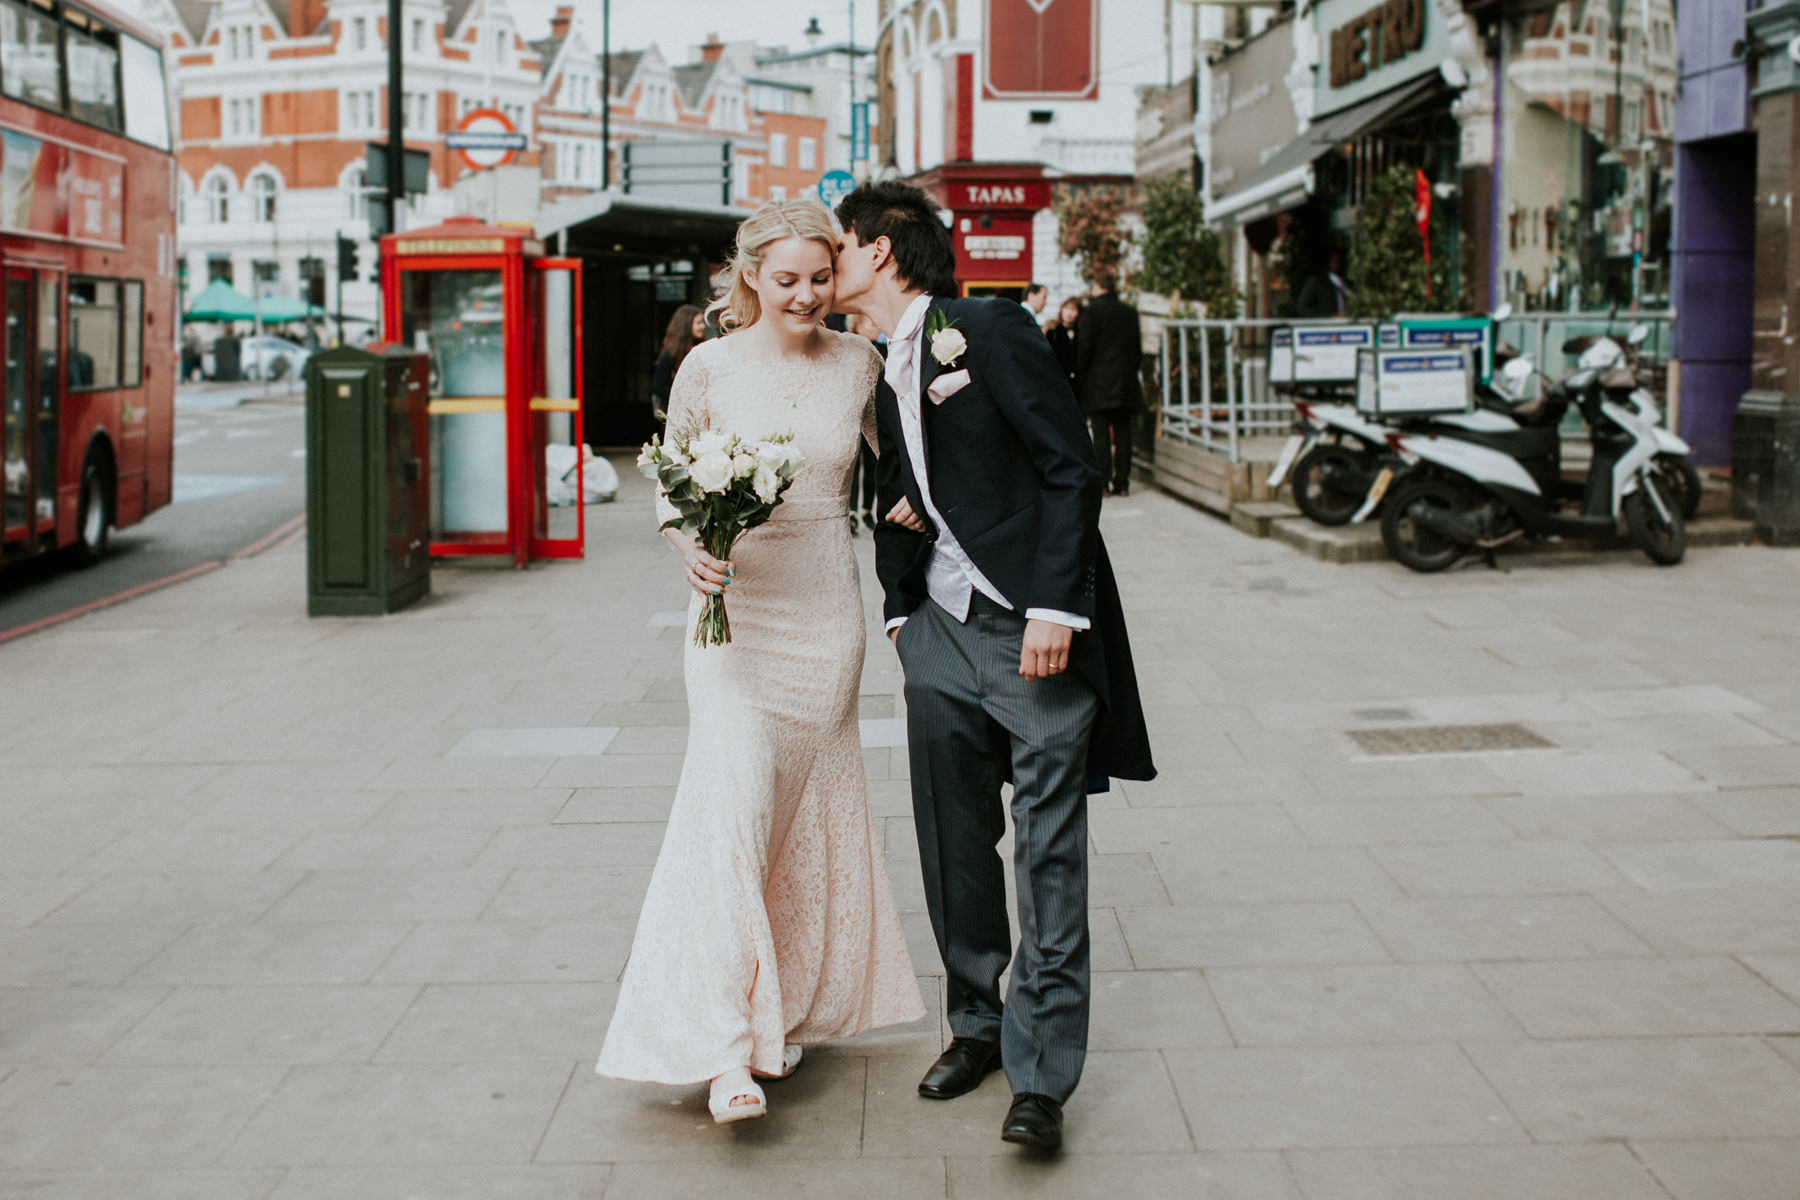 LD-378-newly-married-bride-groom-walking-London-street-photos.jpg